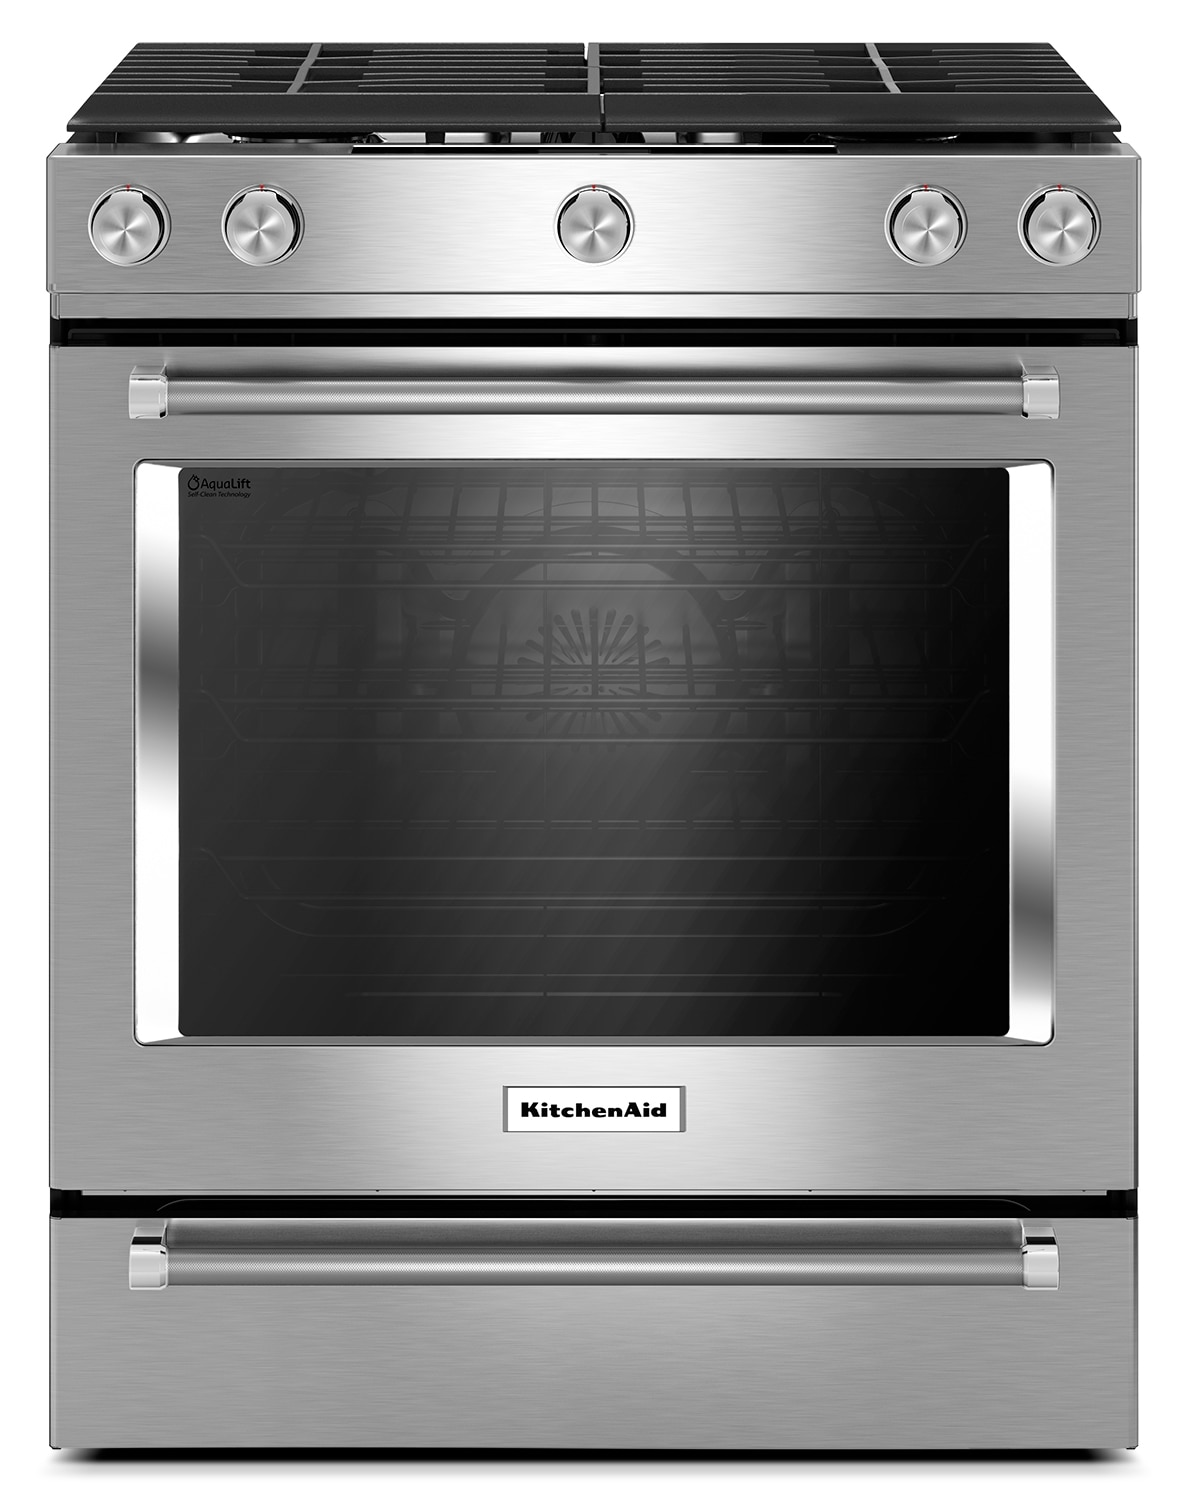 KitchenAid Stainless Steel Slide-In Gas Convection Range (5.8 Cu. Ft.) - KSGG700ESS